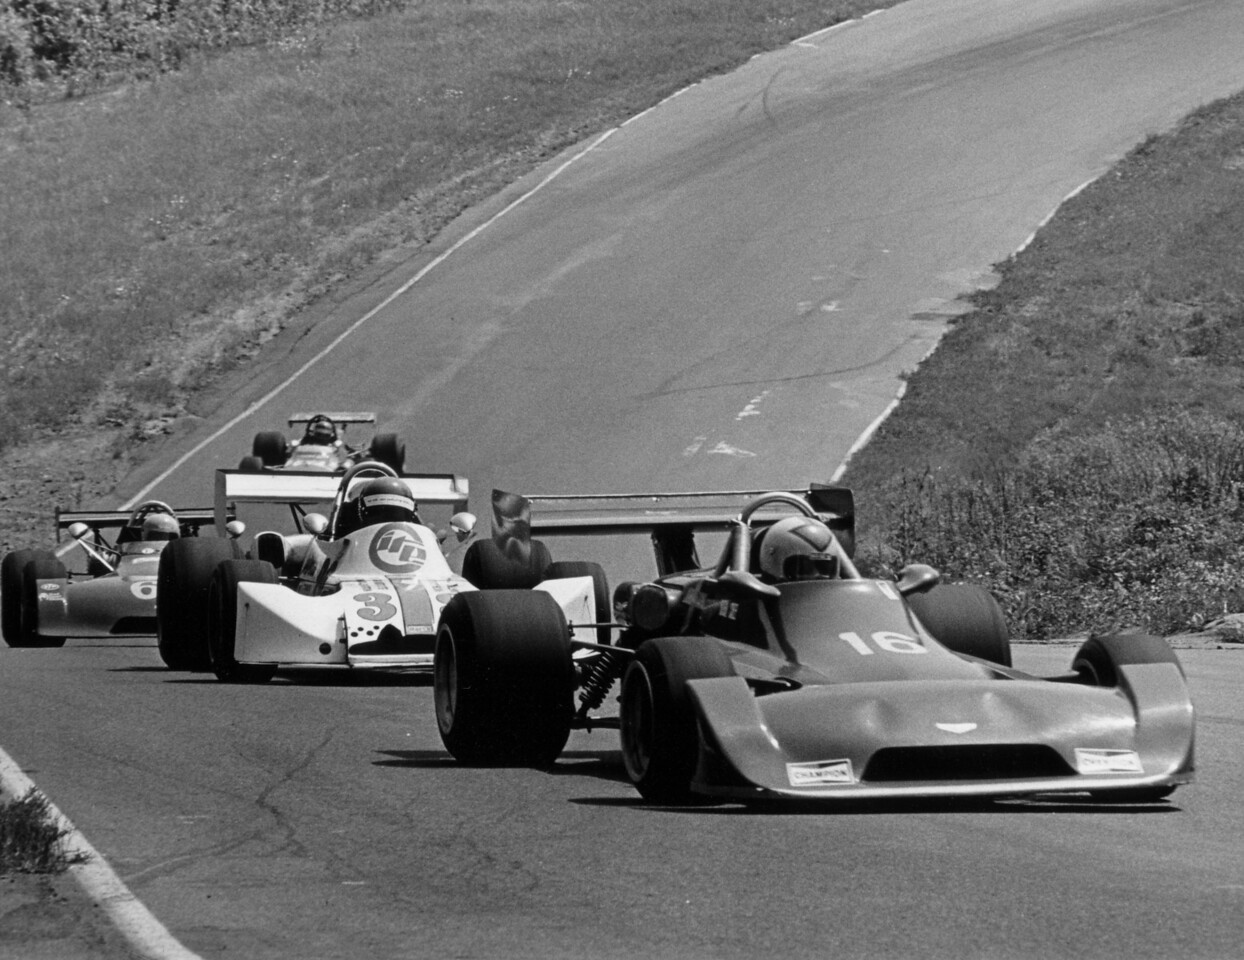 1975 Chevron B29-75-08  Mt. Tremblant  Quebec, shown going up the hill and kink heading for the apprach to Namaero corner.  http://www.lecircuit.com/